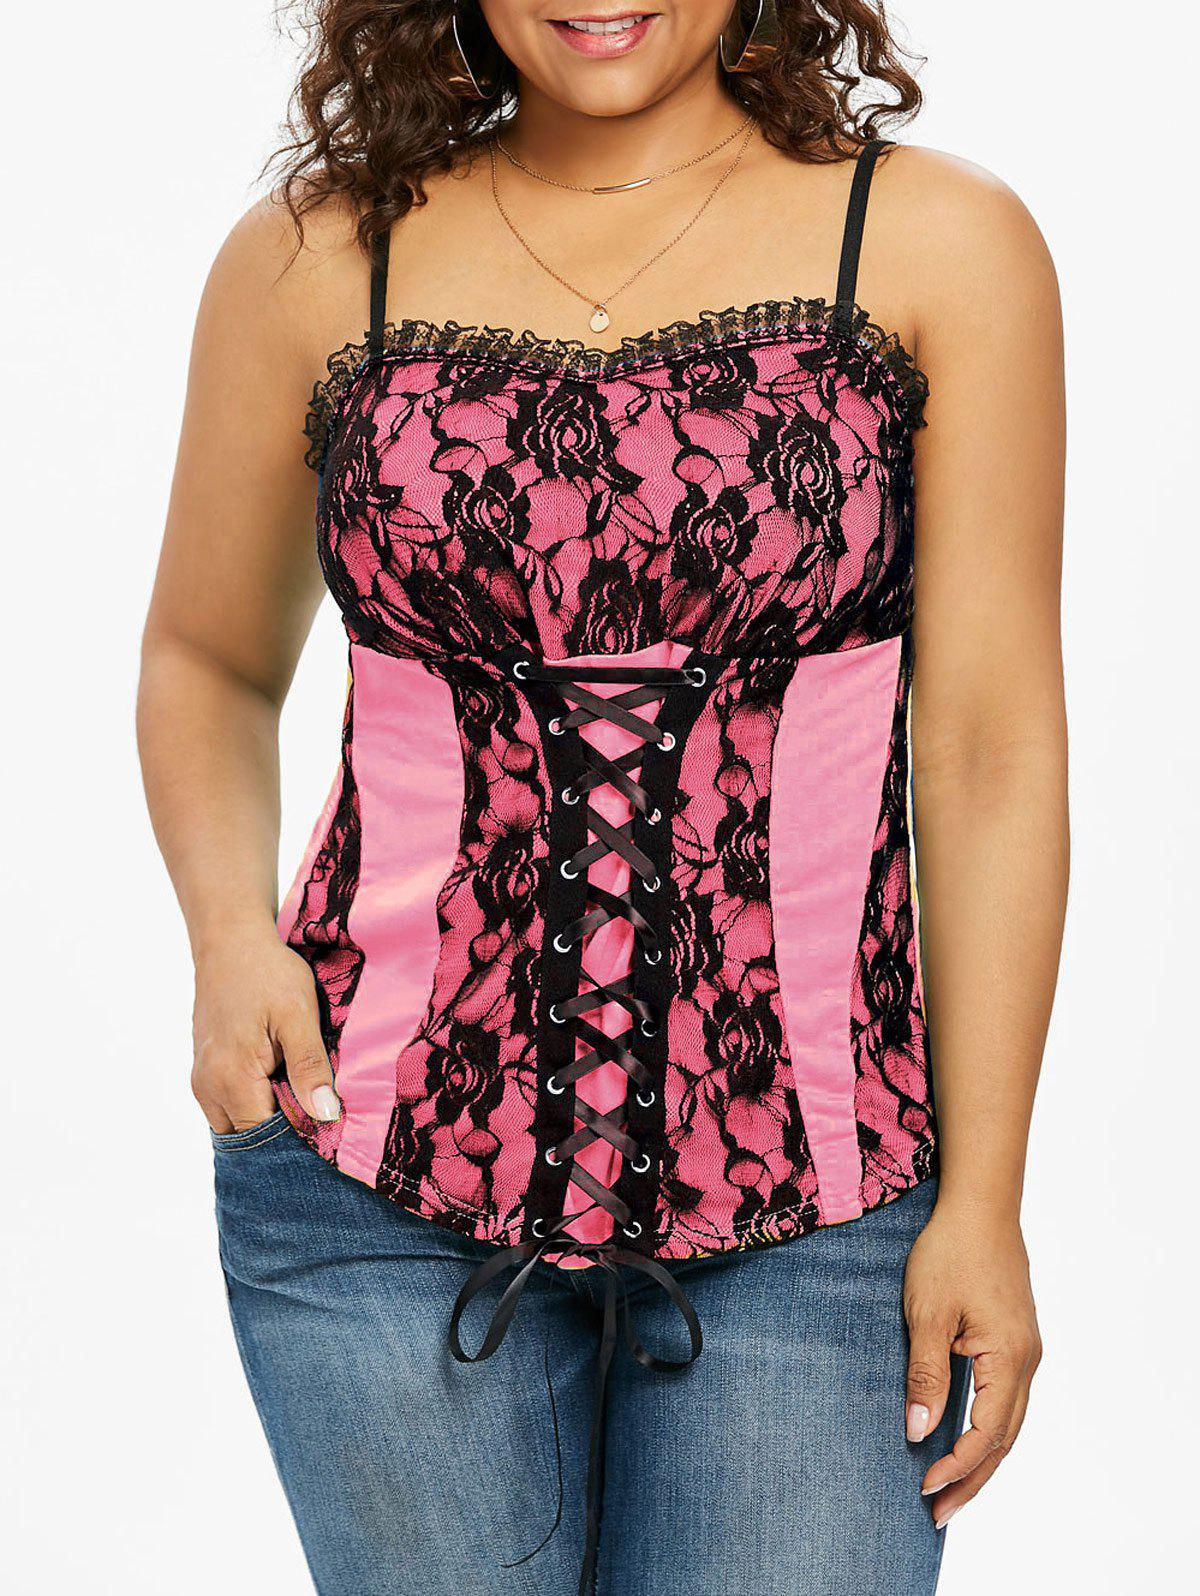 Plus Size Ruffle Trim Lace Up Tank Top - LIGHT PINK 2X